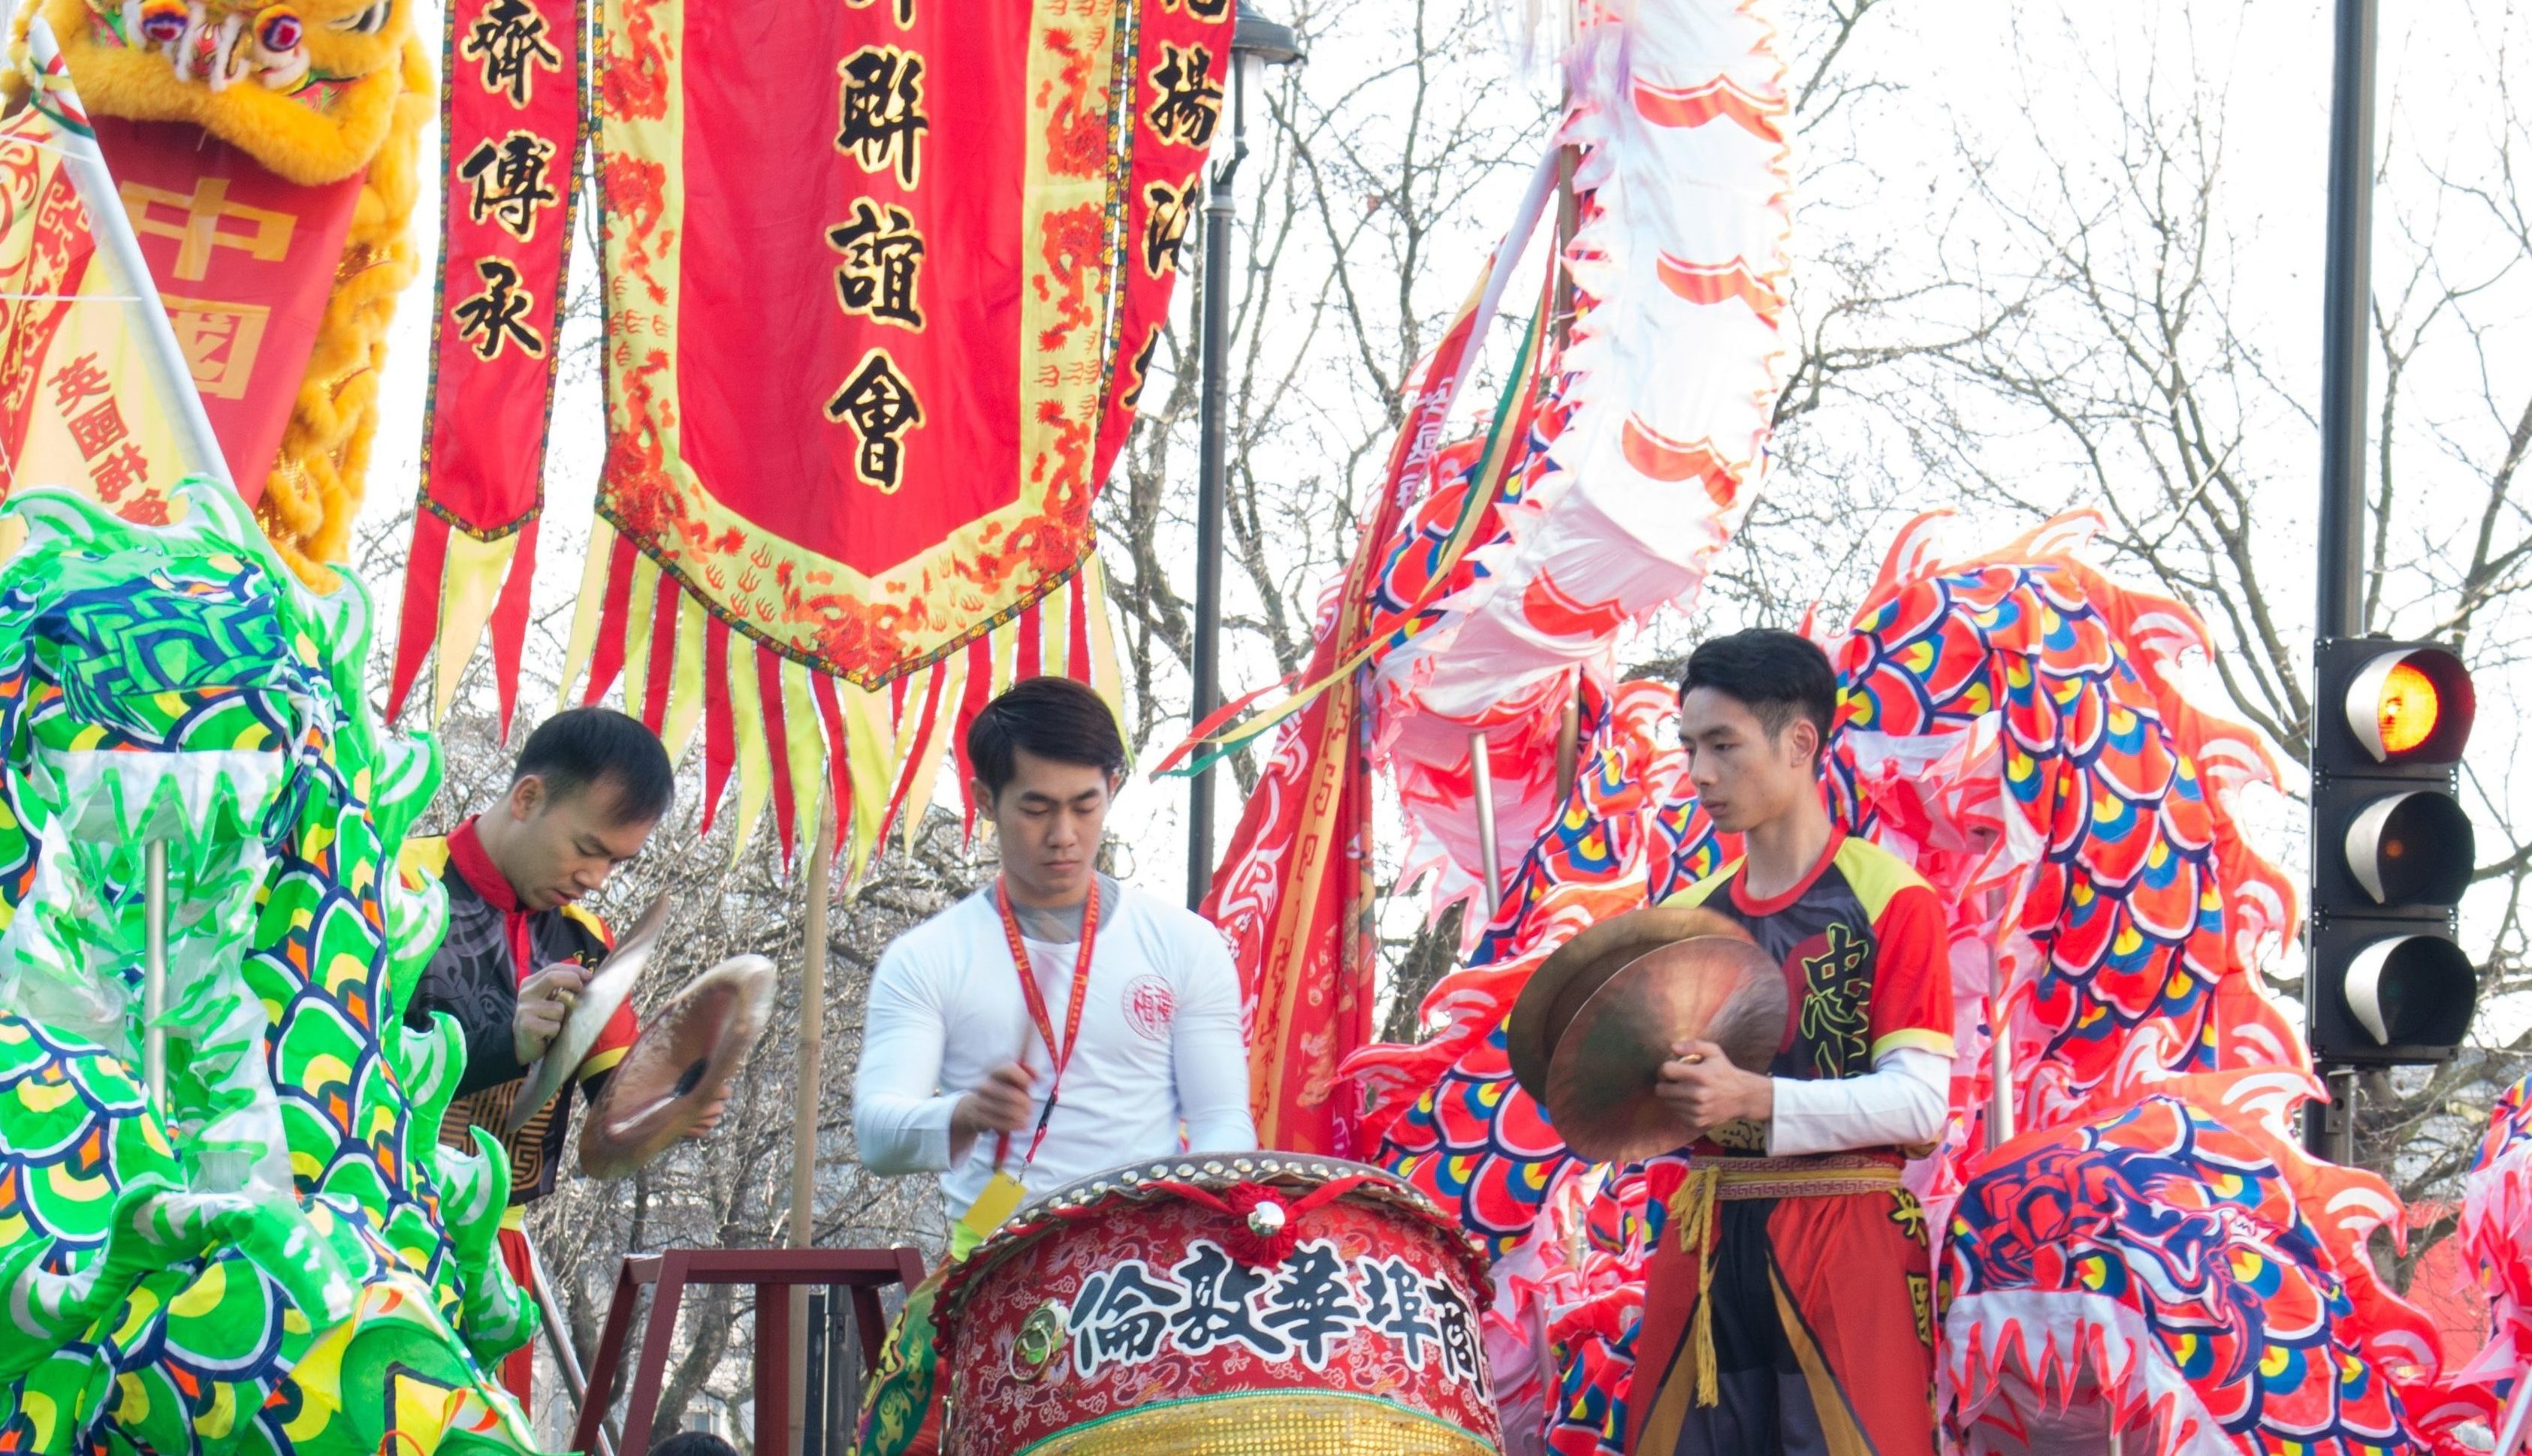 INGLA AT CHINESE NEW YEAR'S CELEBRATION